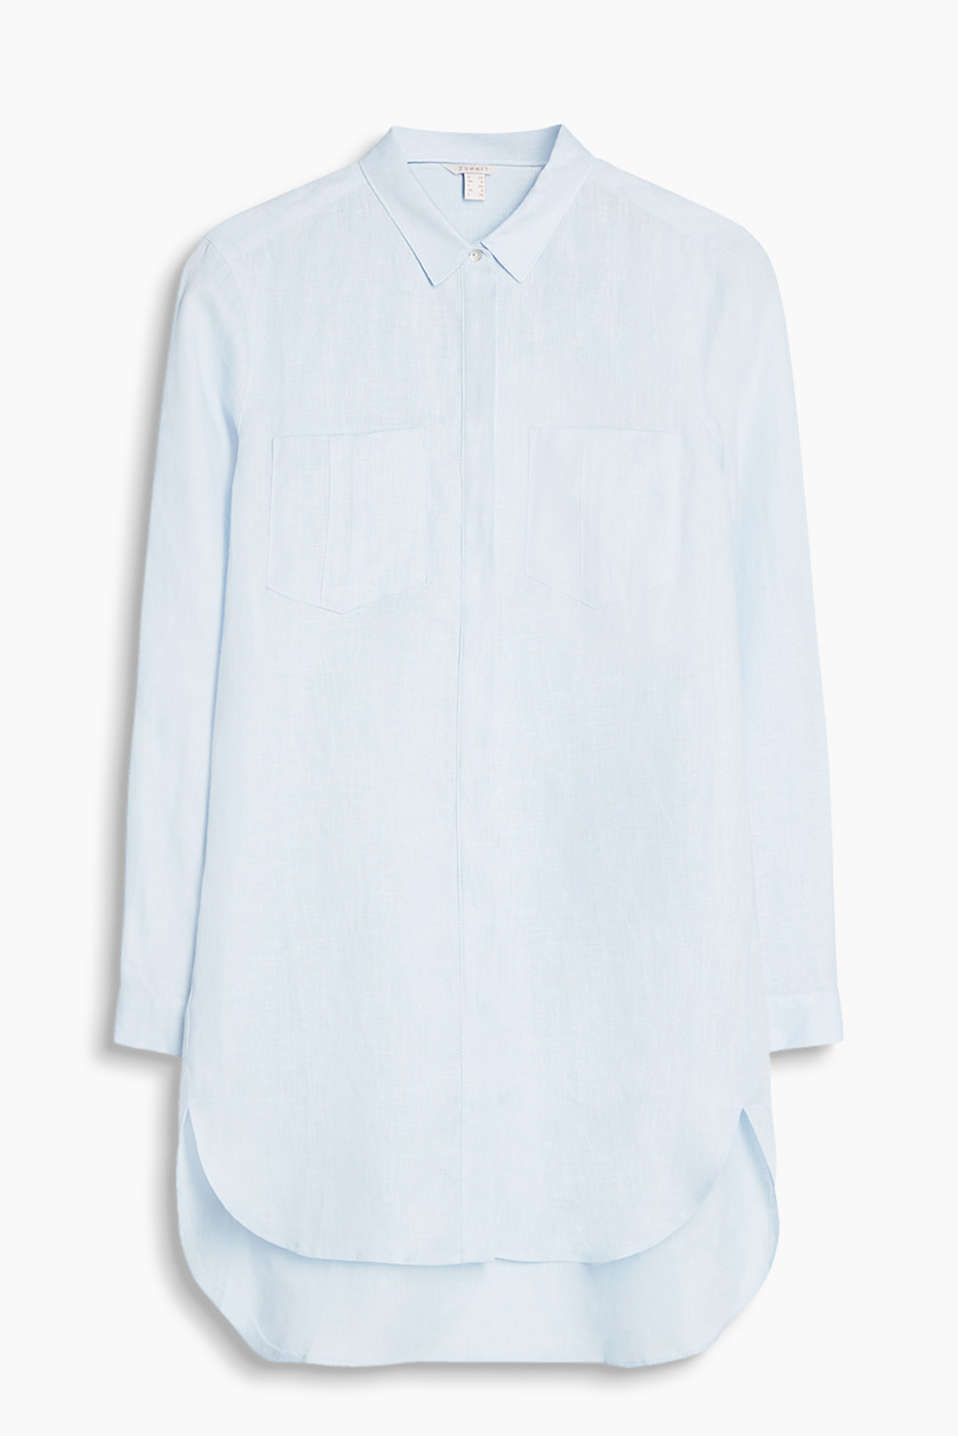 Long blouse with patch breast pockets and a concealed button placket, 100% linen